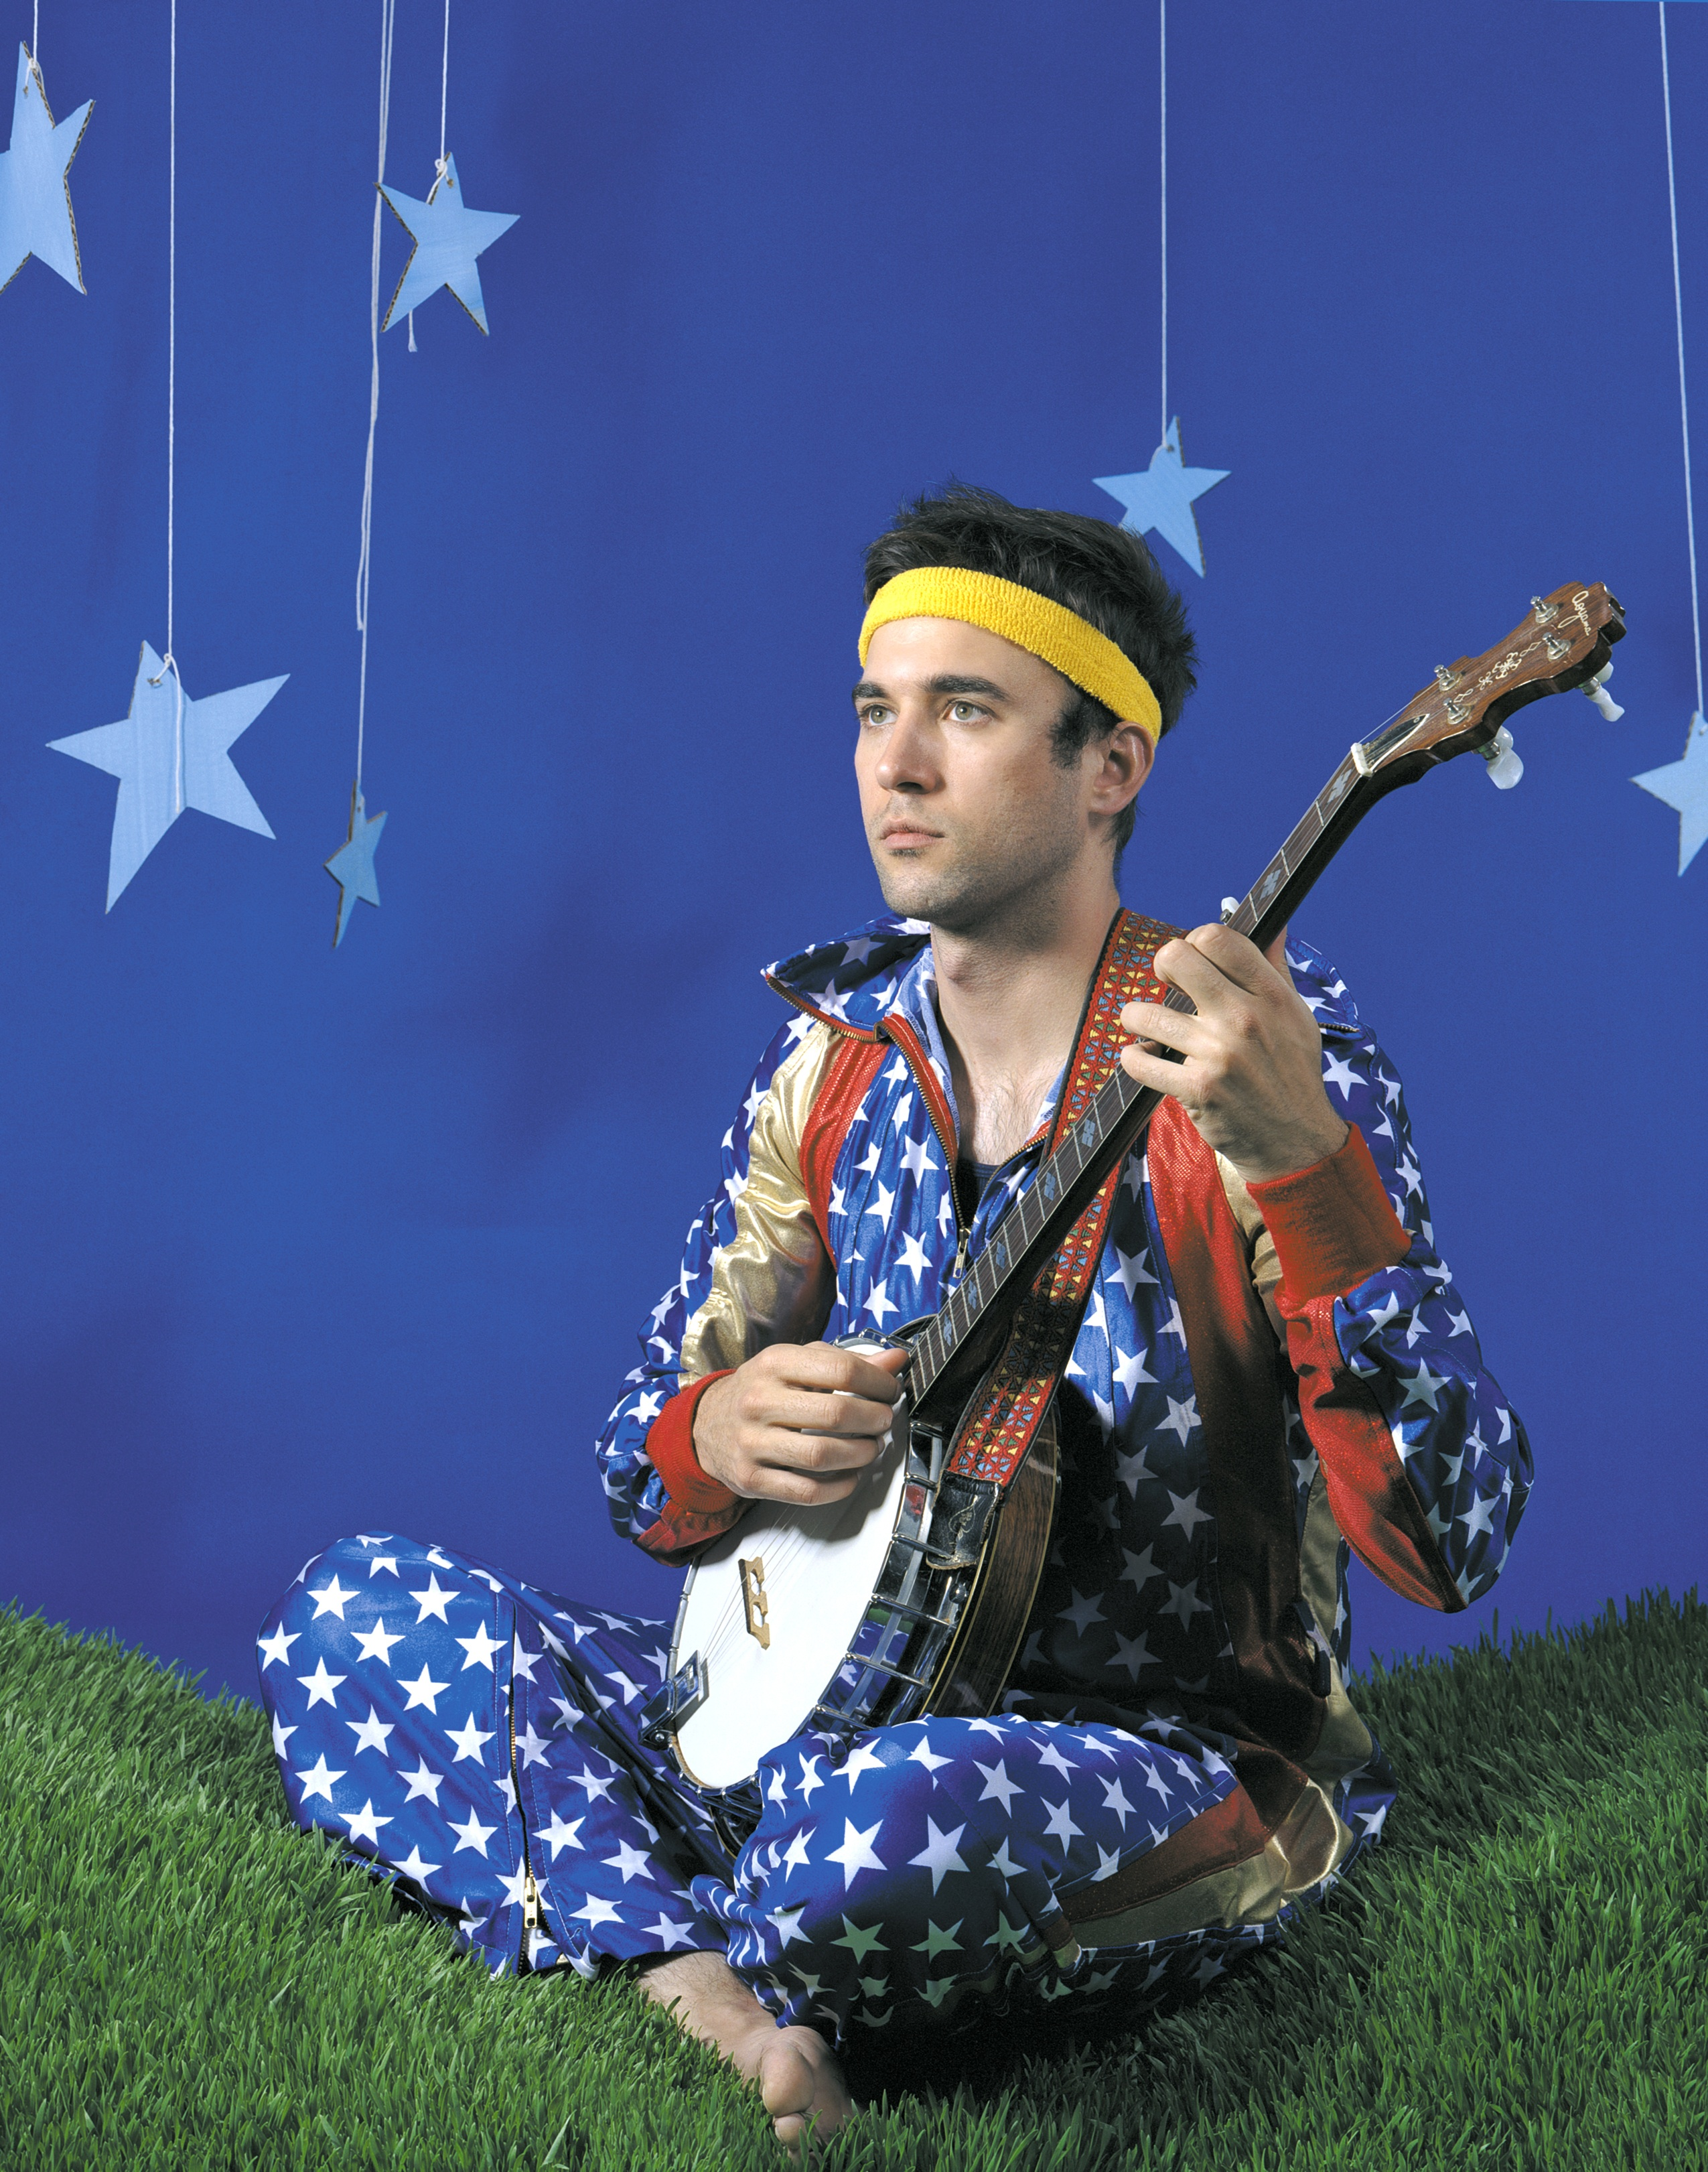 http://sherunsbrooklyn.files.wordpress.com/2009/10/sufjan-avalanche1-photo-credit-denny-renshaw.jpg